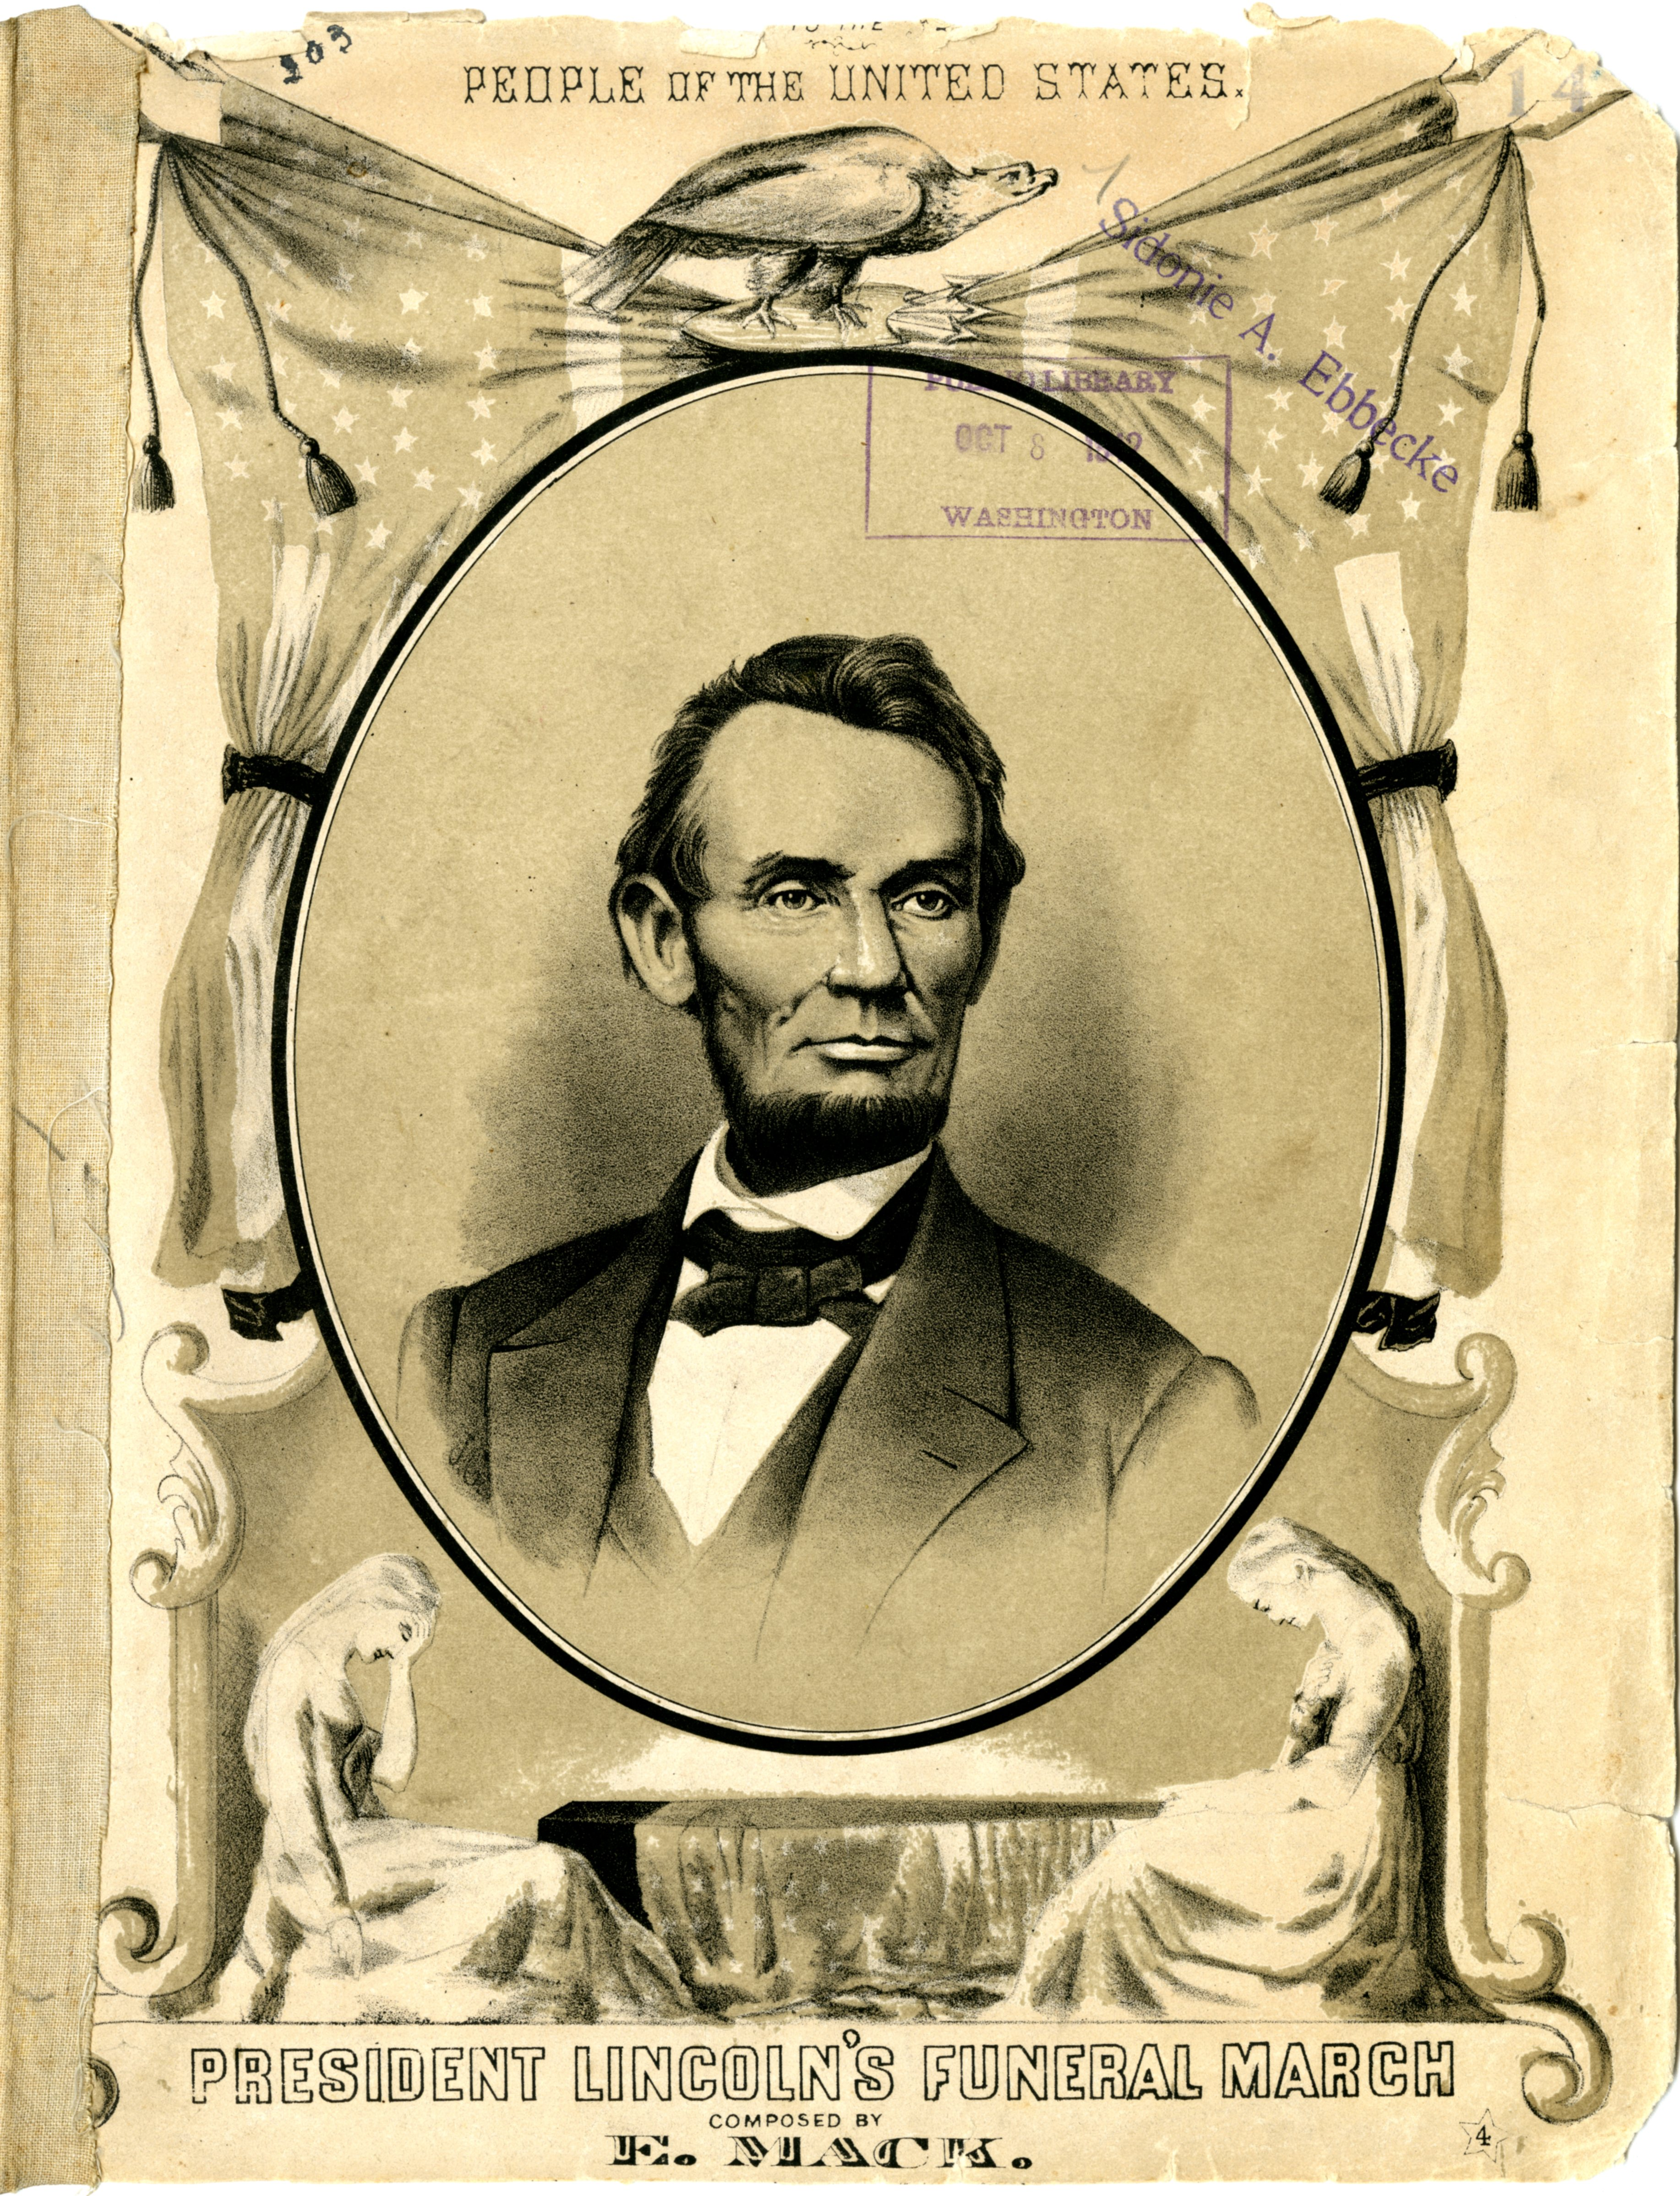 President Lincoln's Funeral March